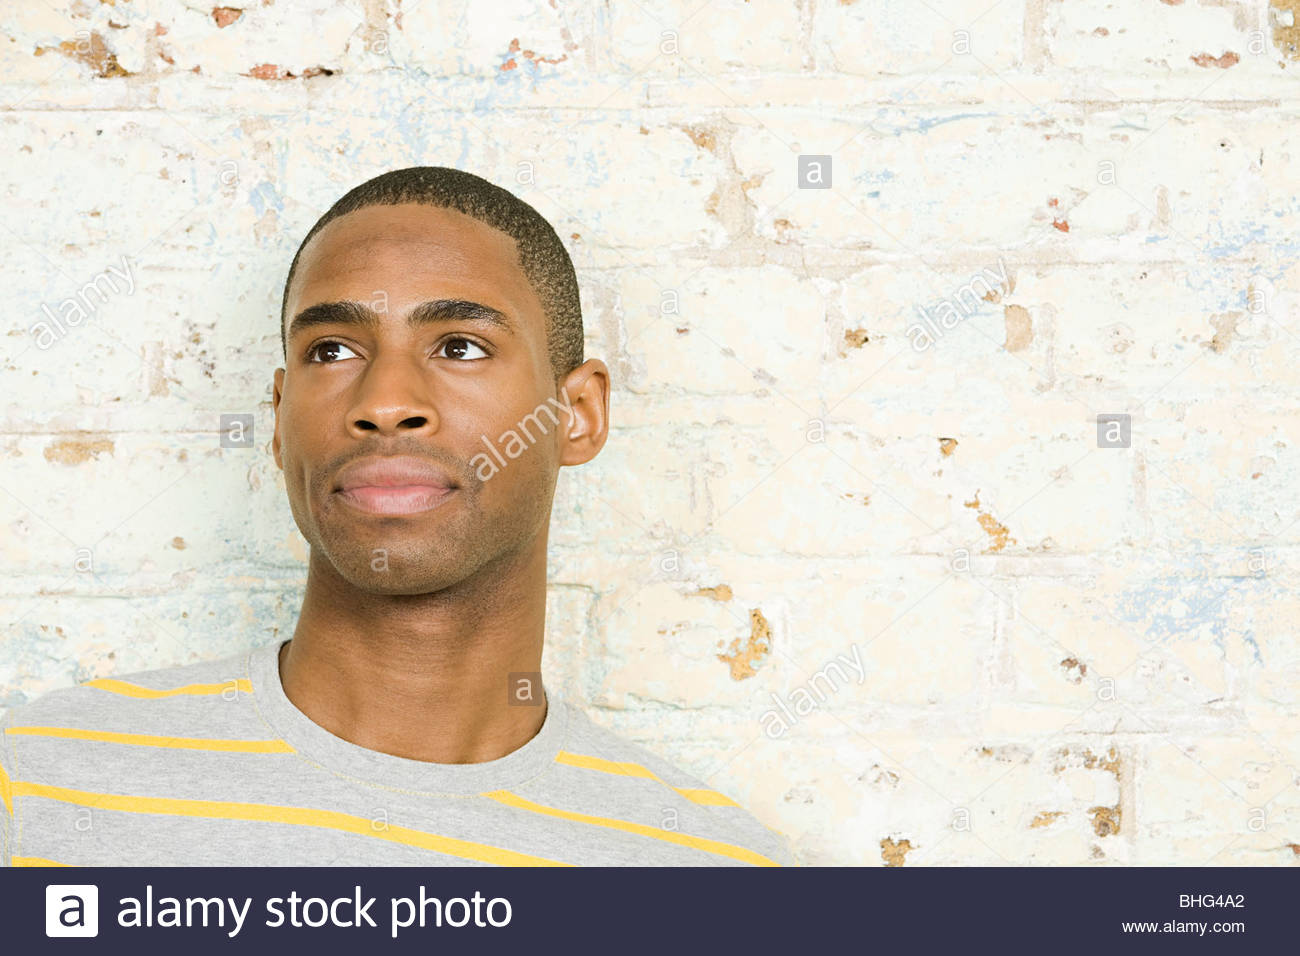 Portrait of a young man - Stock Image